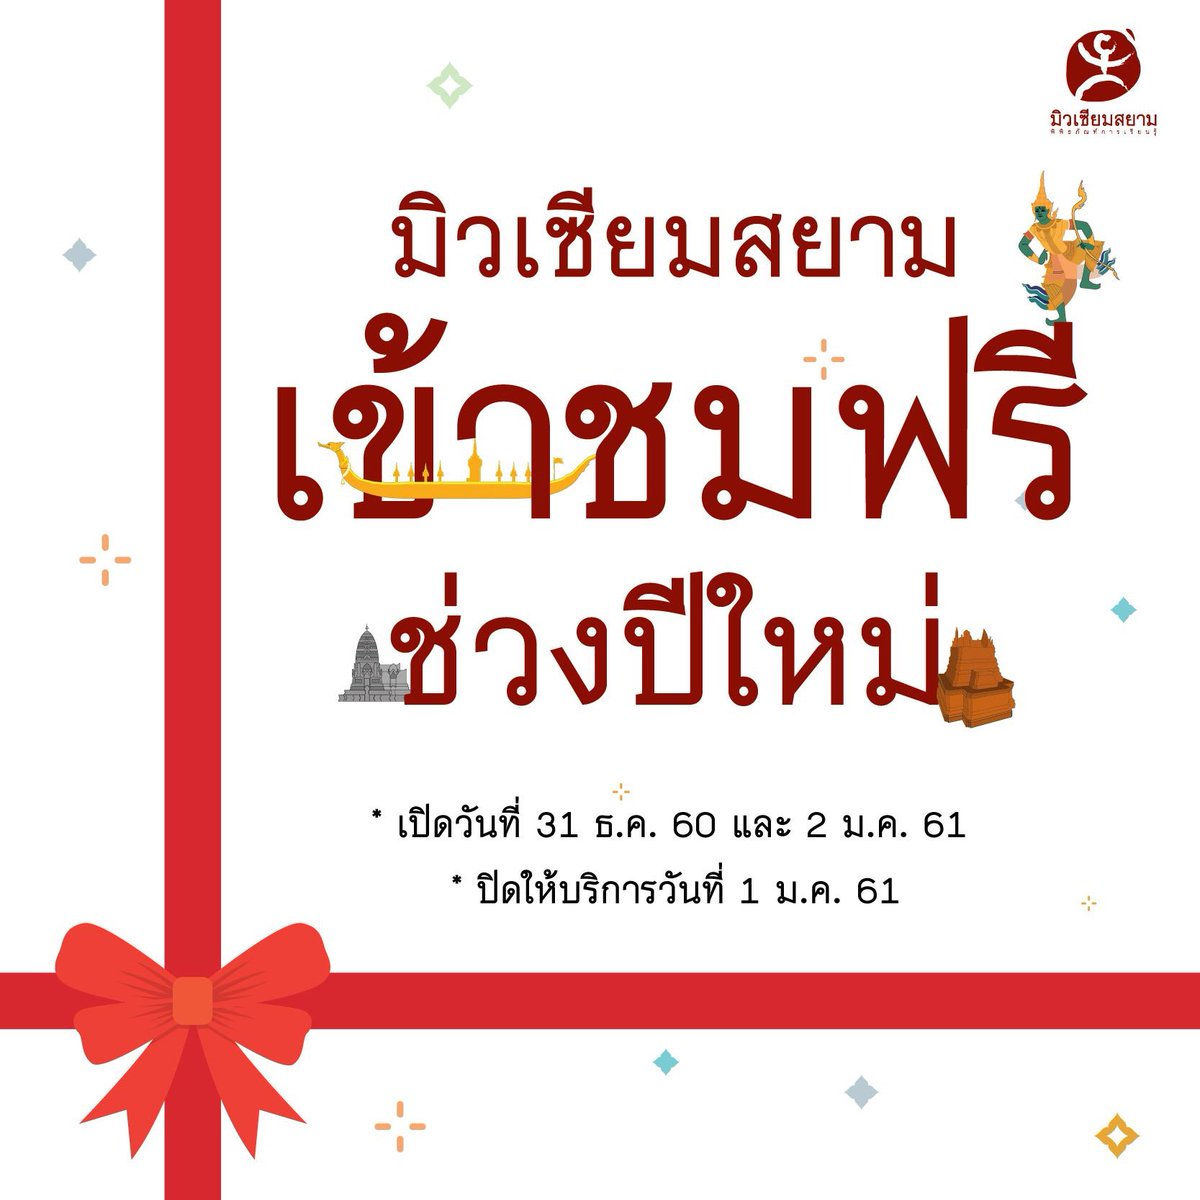 Richard barrow in thailand on twitter museum siam is free for richard barrow in thailand on twitter museum siam is free for everyone on 31 december and 2 january the museum is closed on 1 january kristyandbryce Choice Image